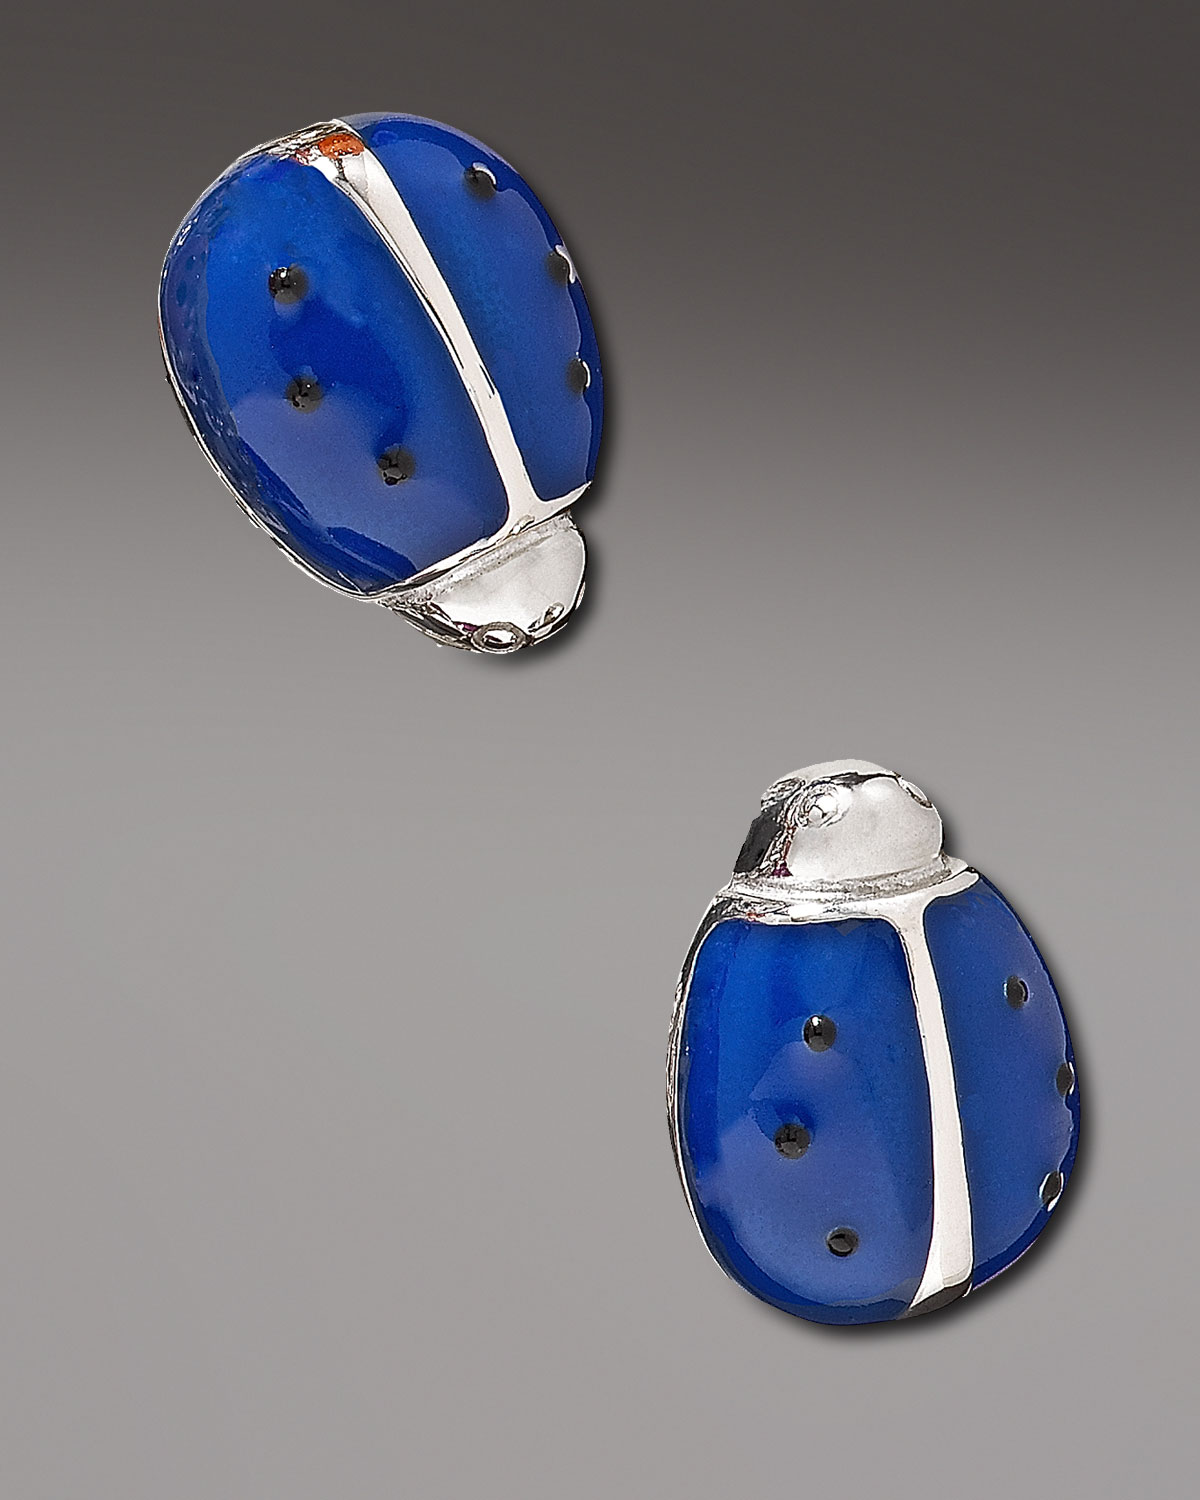 Jan Leslie Small Ladybug Cuff Links in Blue for Men | Lyst